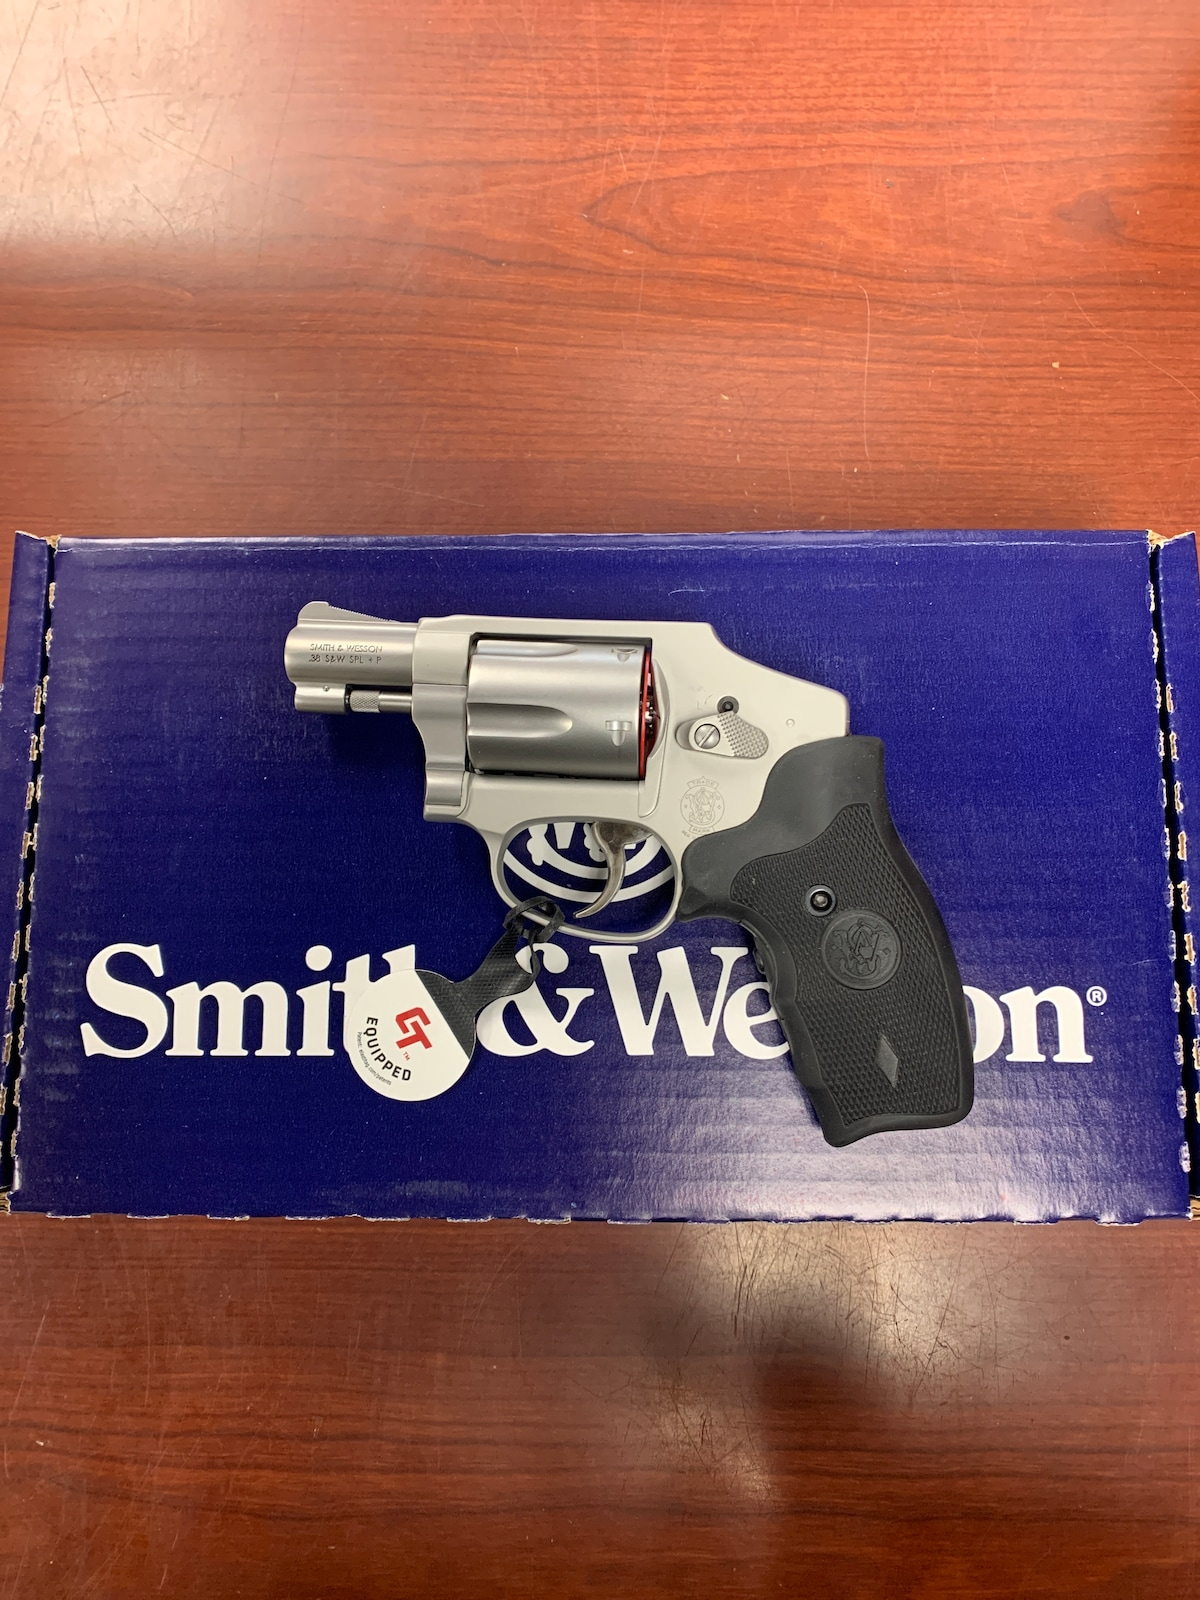 SMITH & WESSON 642-2 airweight crimson trace laser grip 163811